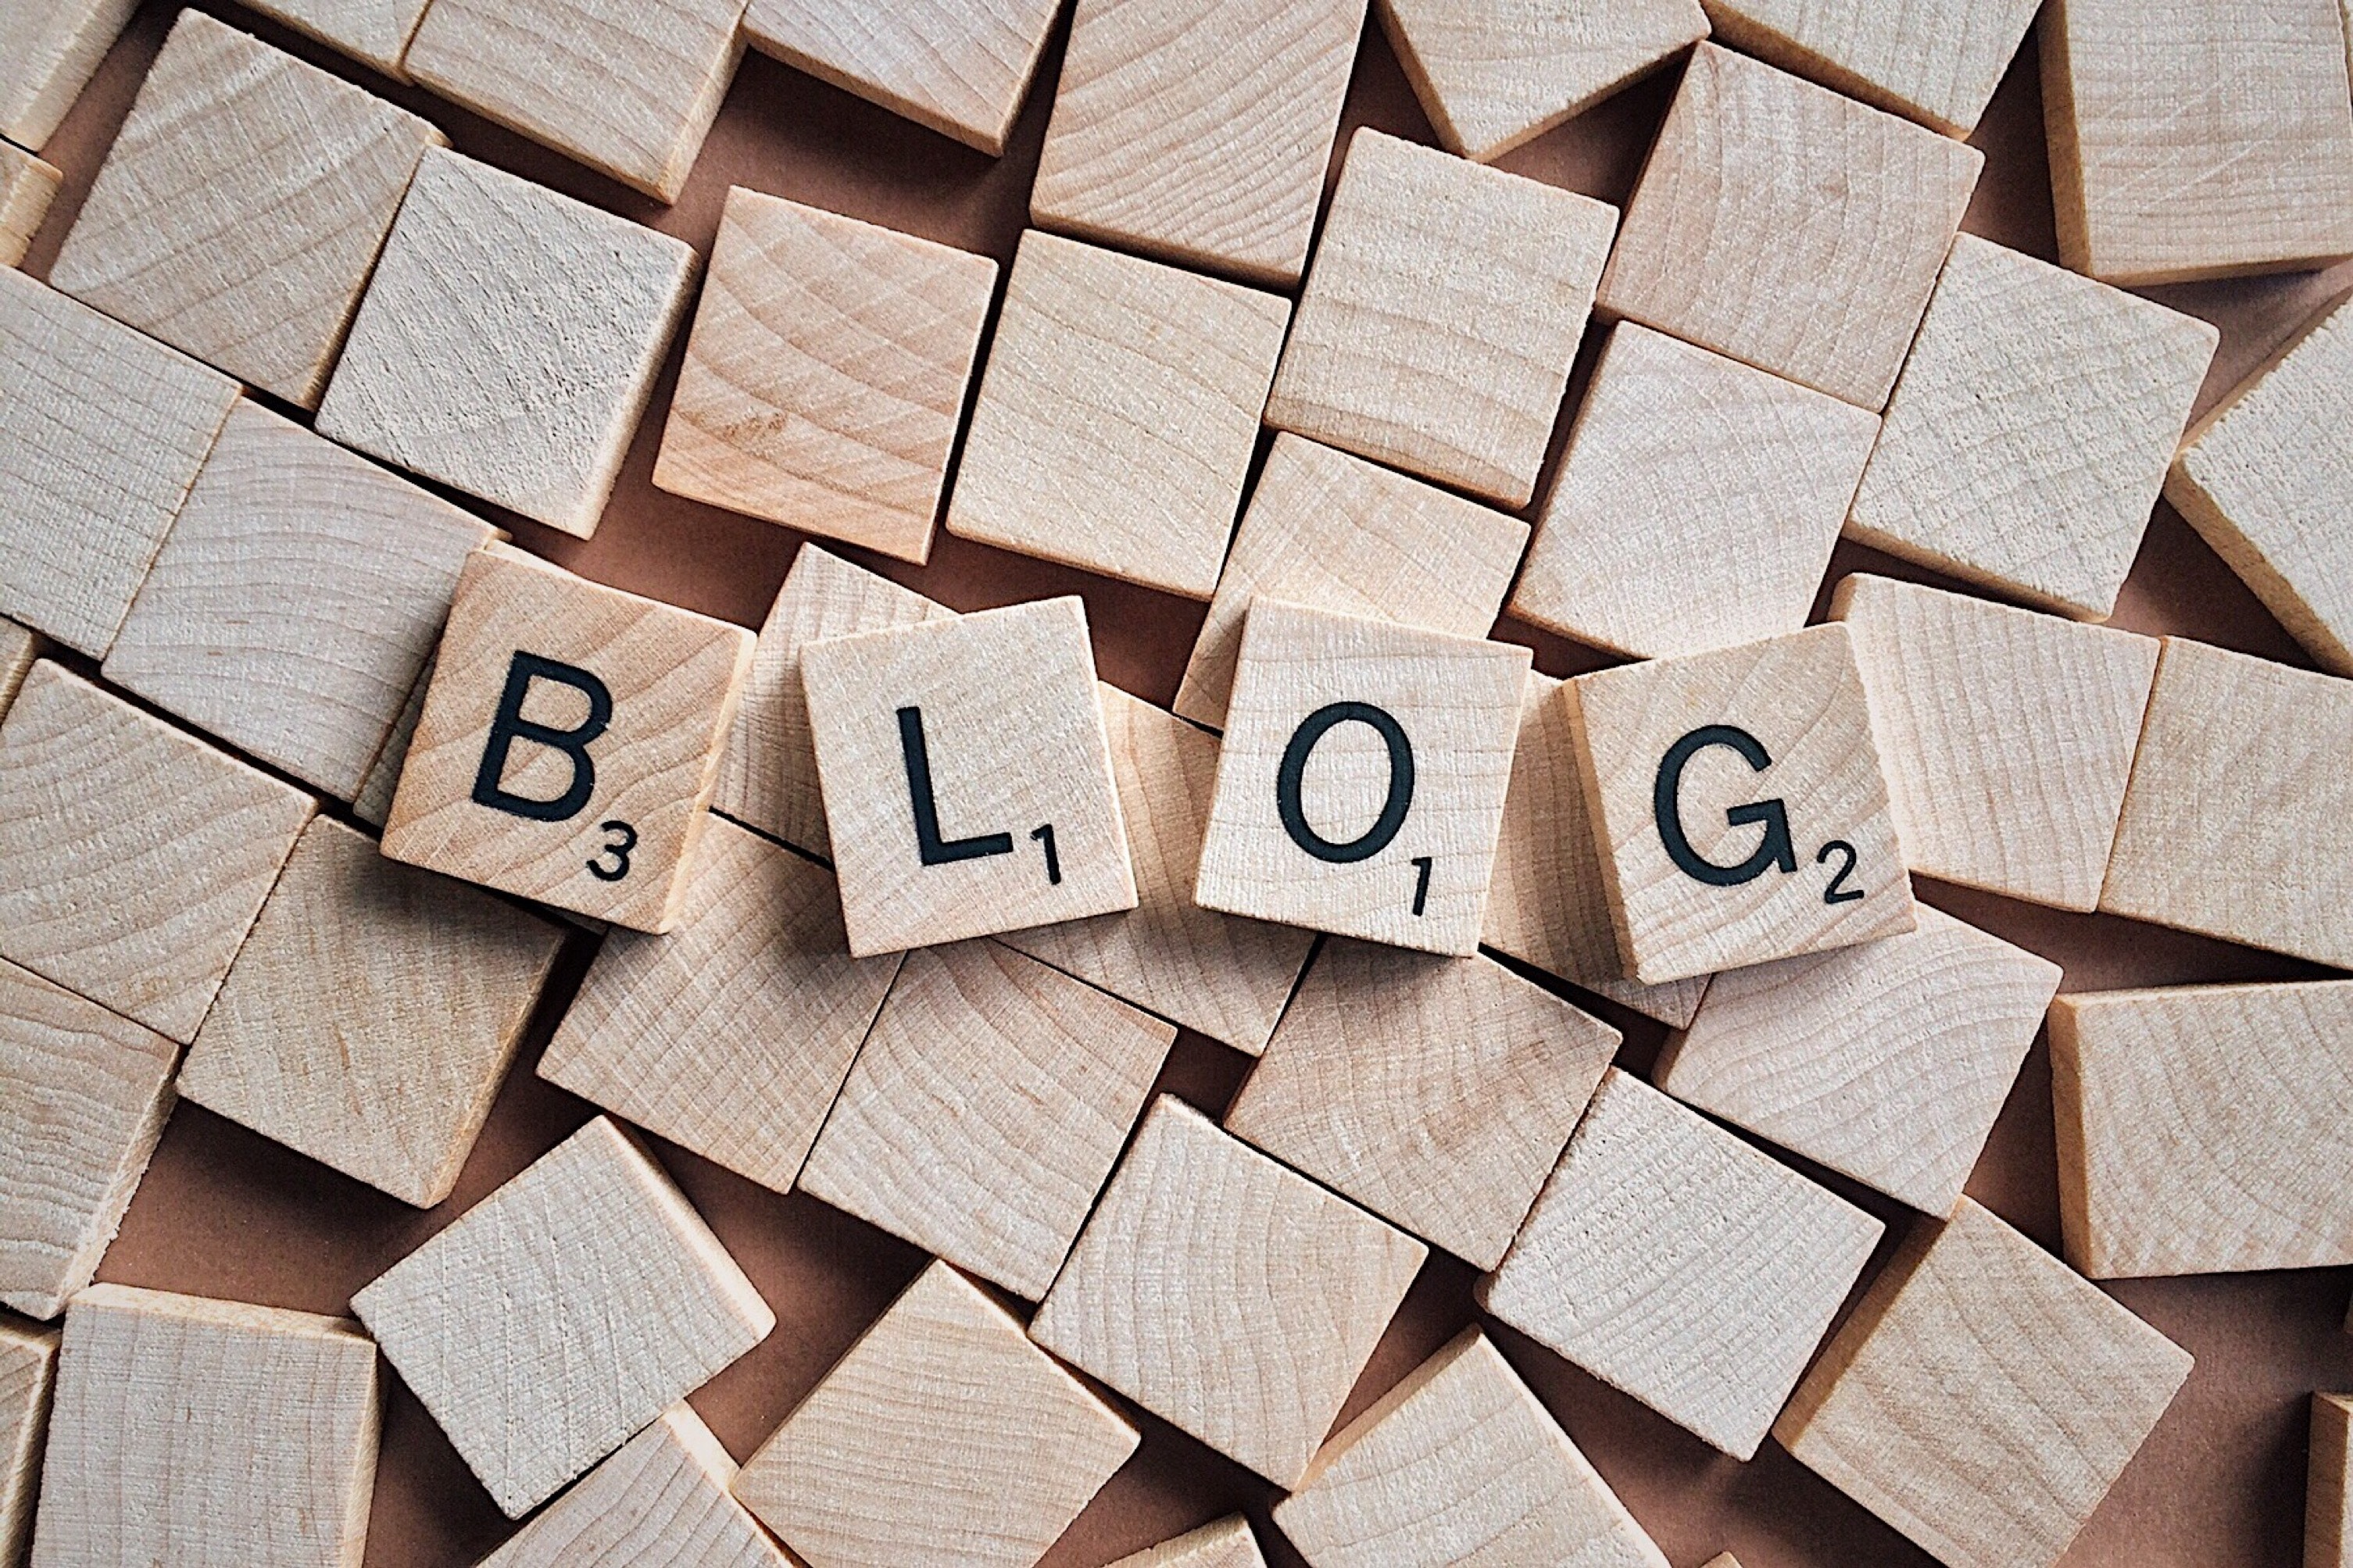 Blogging is important for your business